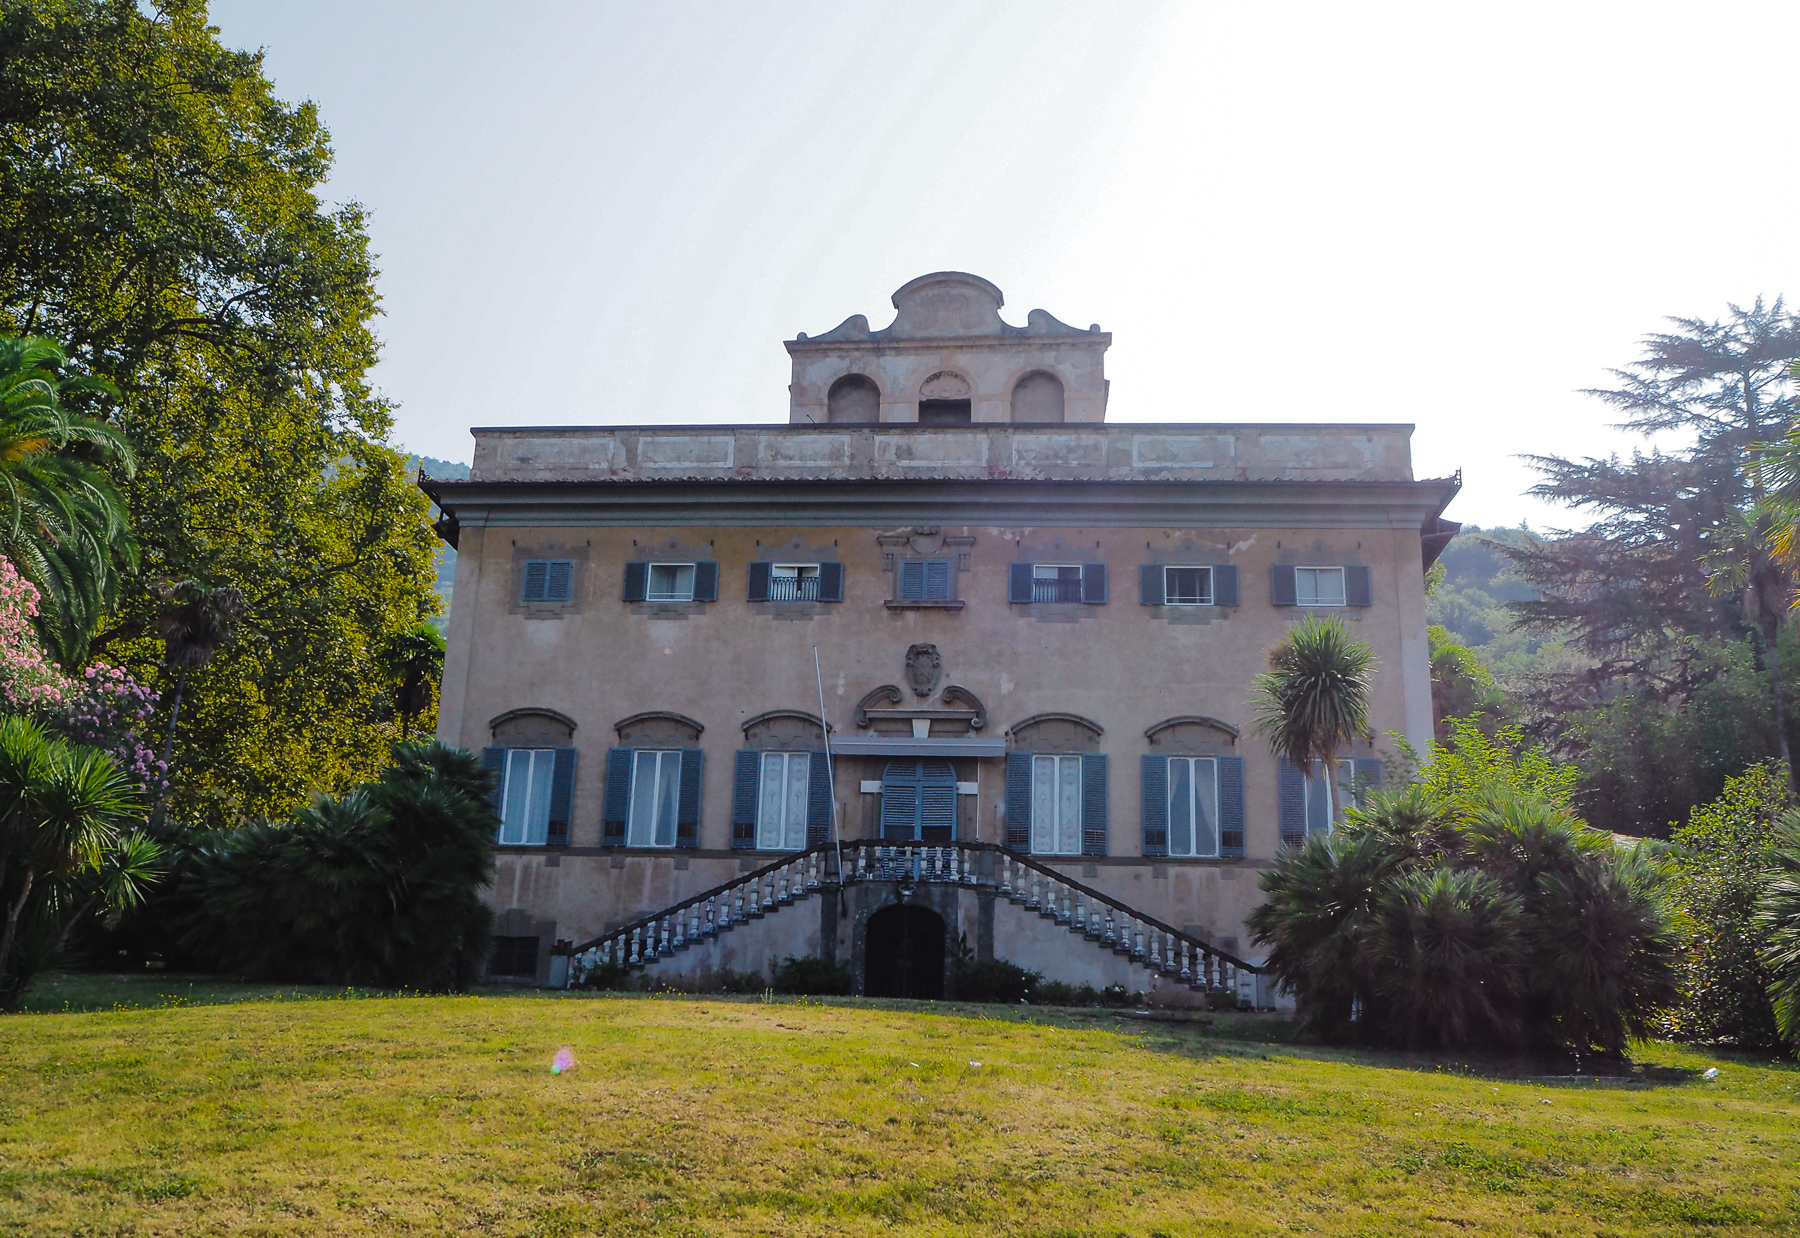 Villa di Corliano in Tuscany close to Pisa - the wedding location